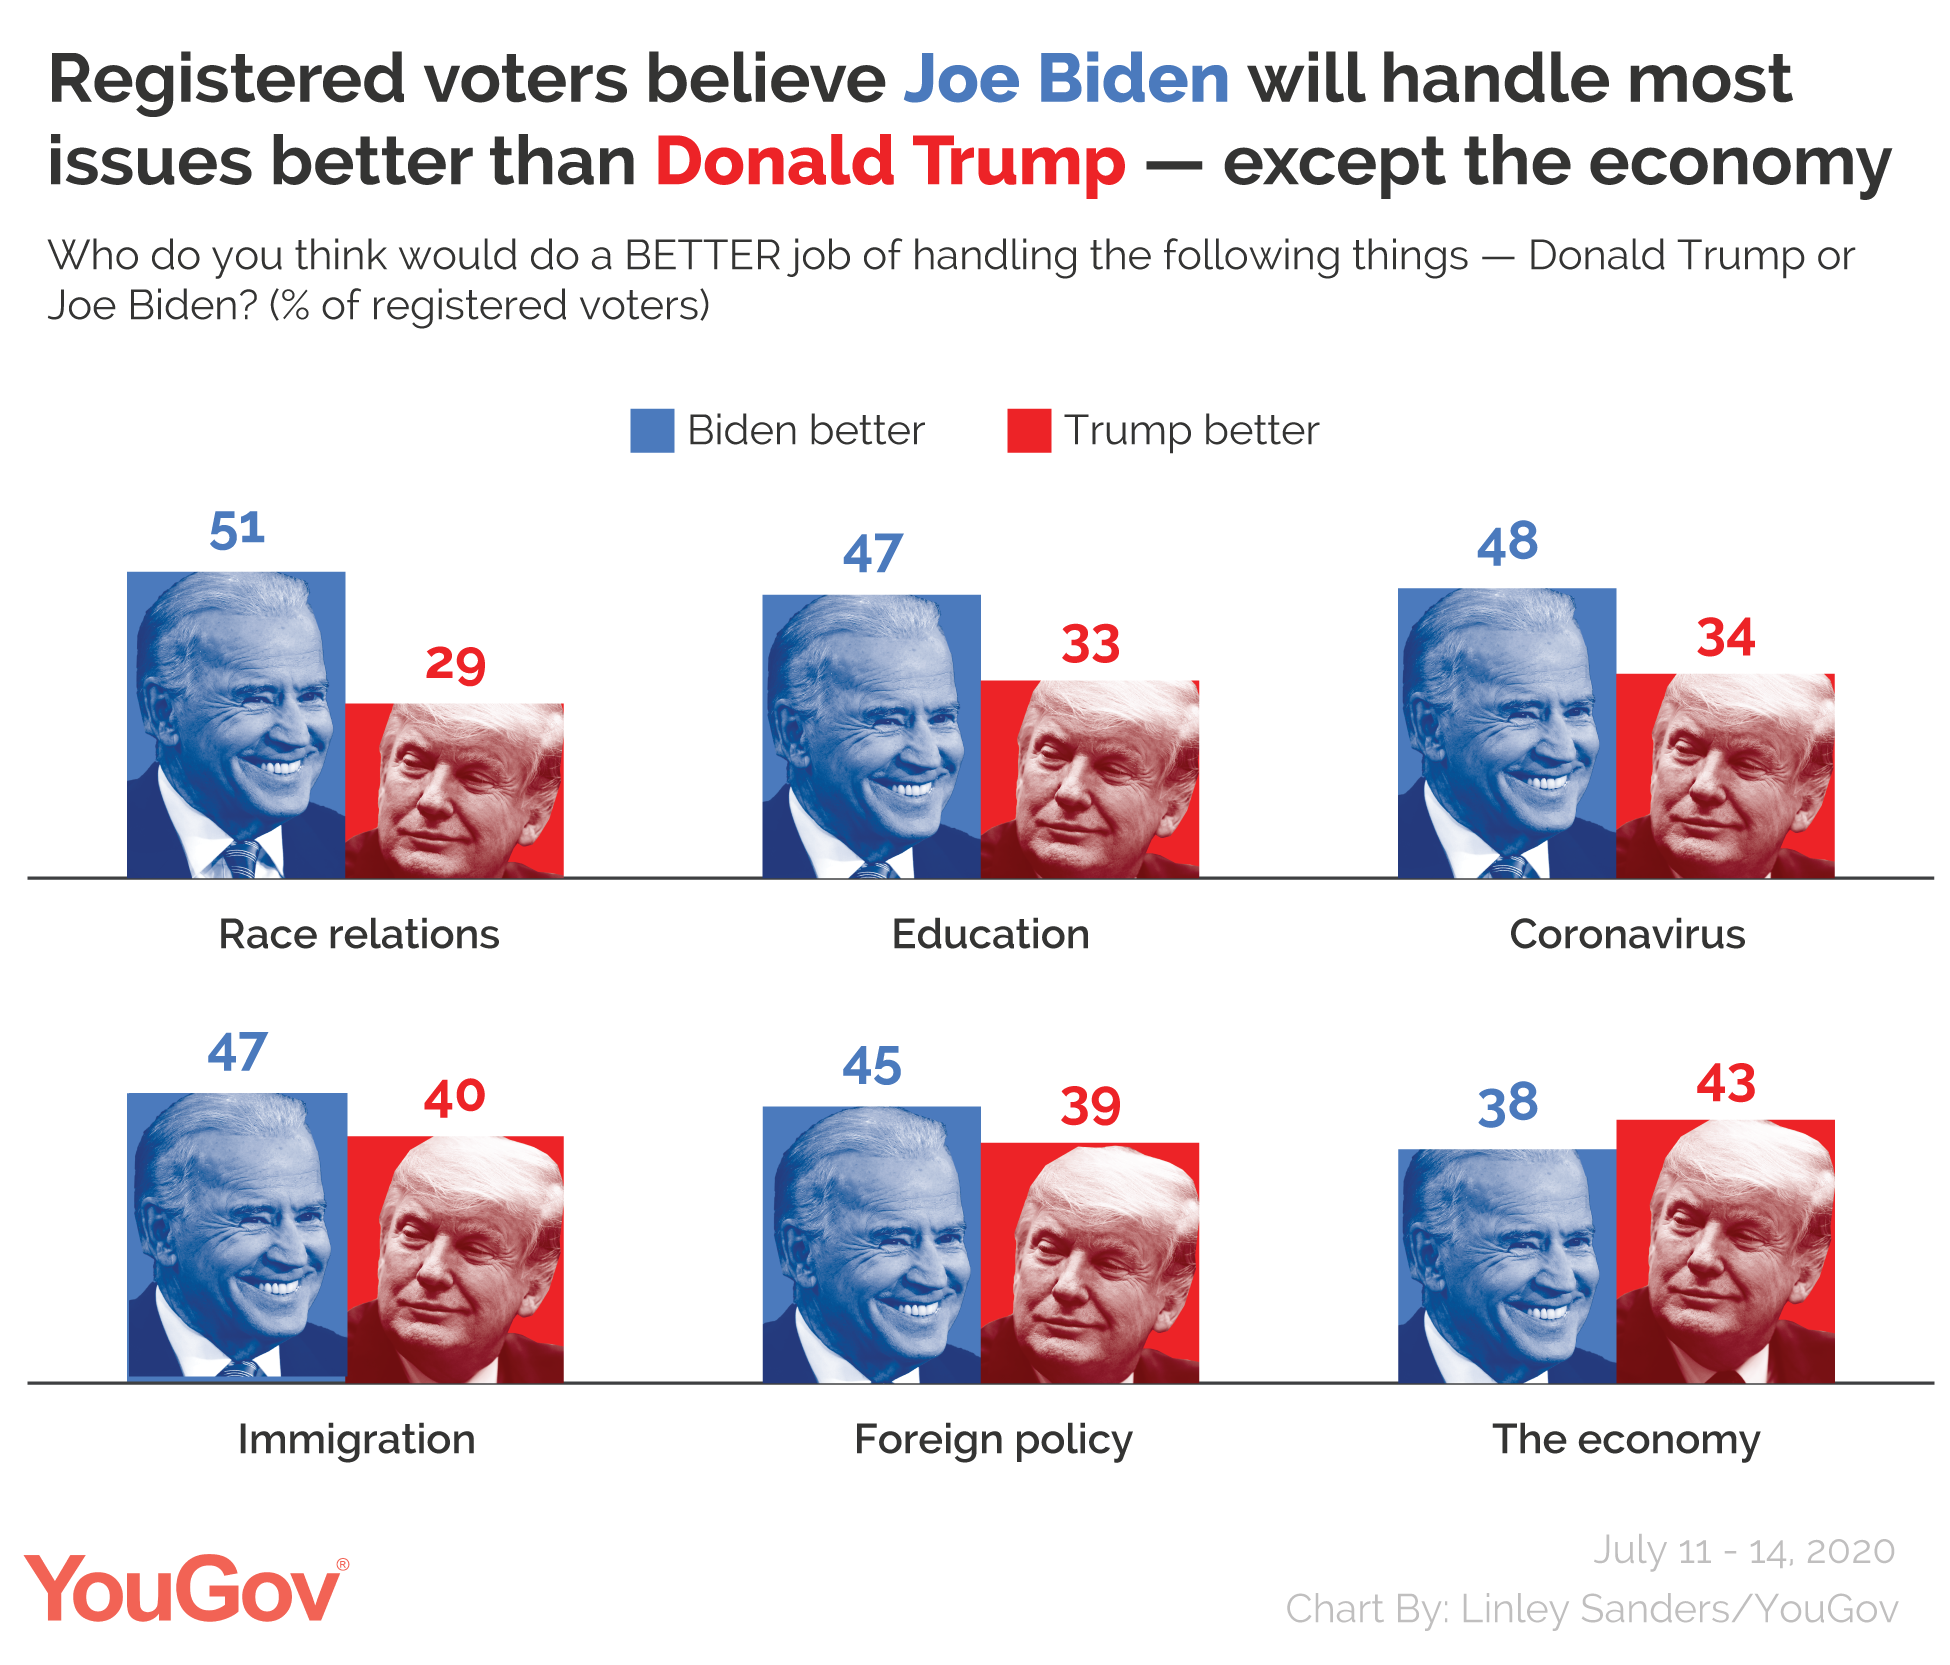 Registered voters believe Joe Biden will handle most issues better than Donald Trump, except the economy